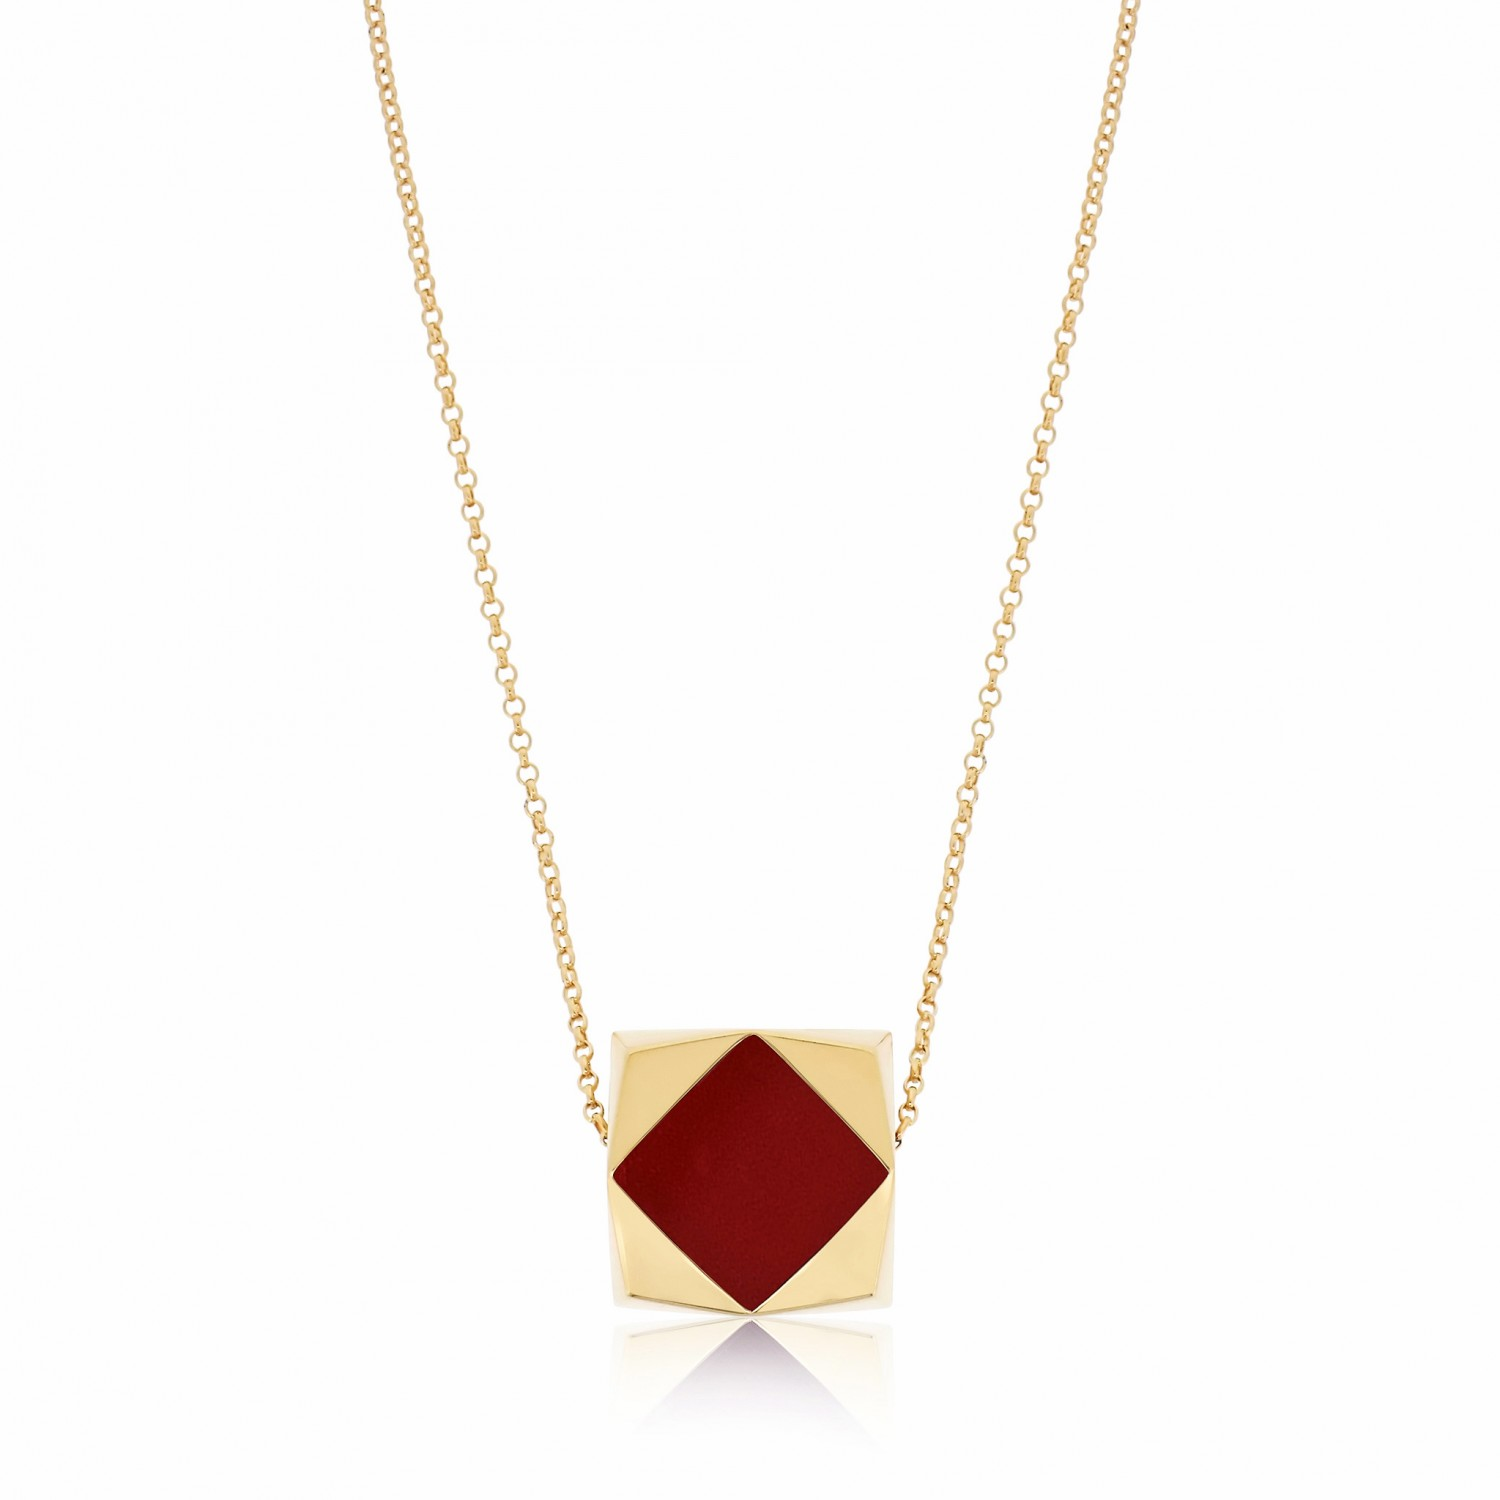 Ornate Square Rhombus Red Agate Necklace